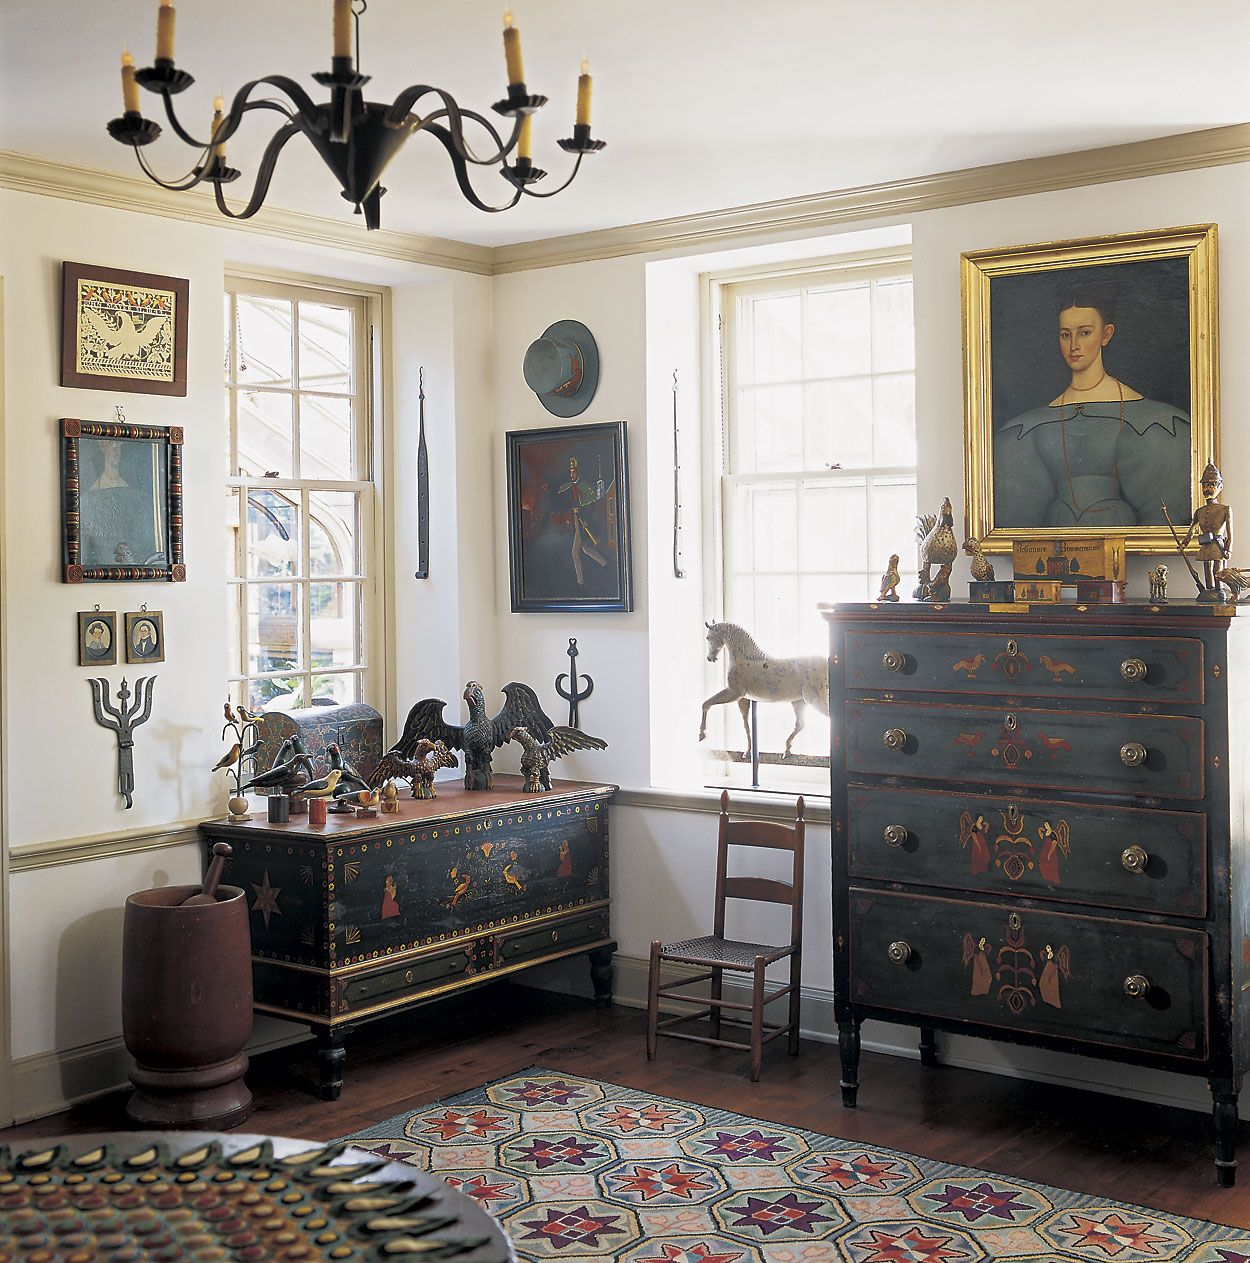 Colonial Home Decorating Ideas: Lifestyle: Eagles & Tulips, Snakes & Weathervanes: A